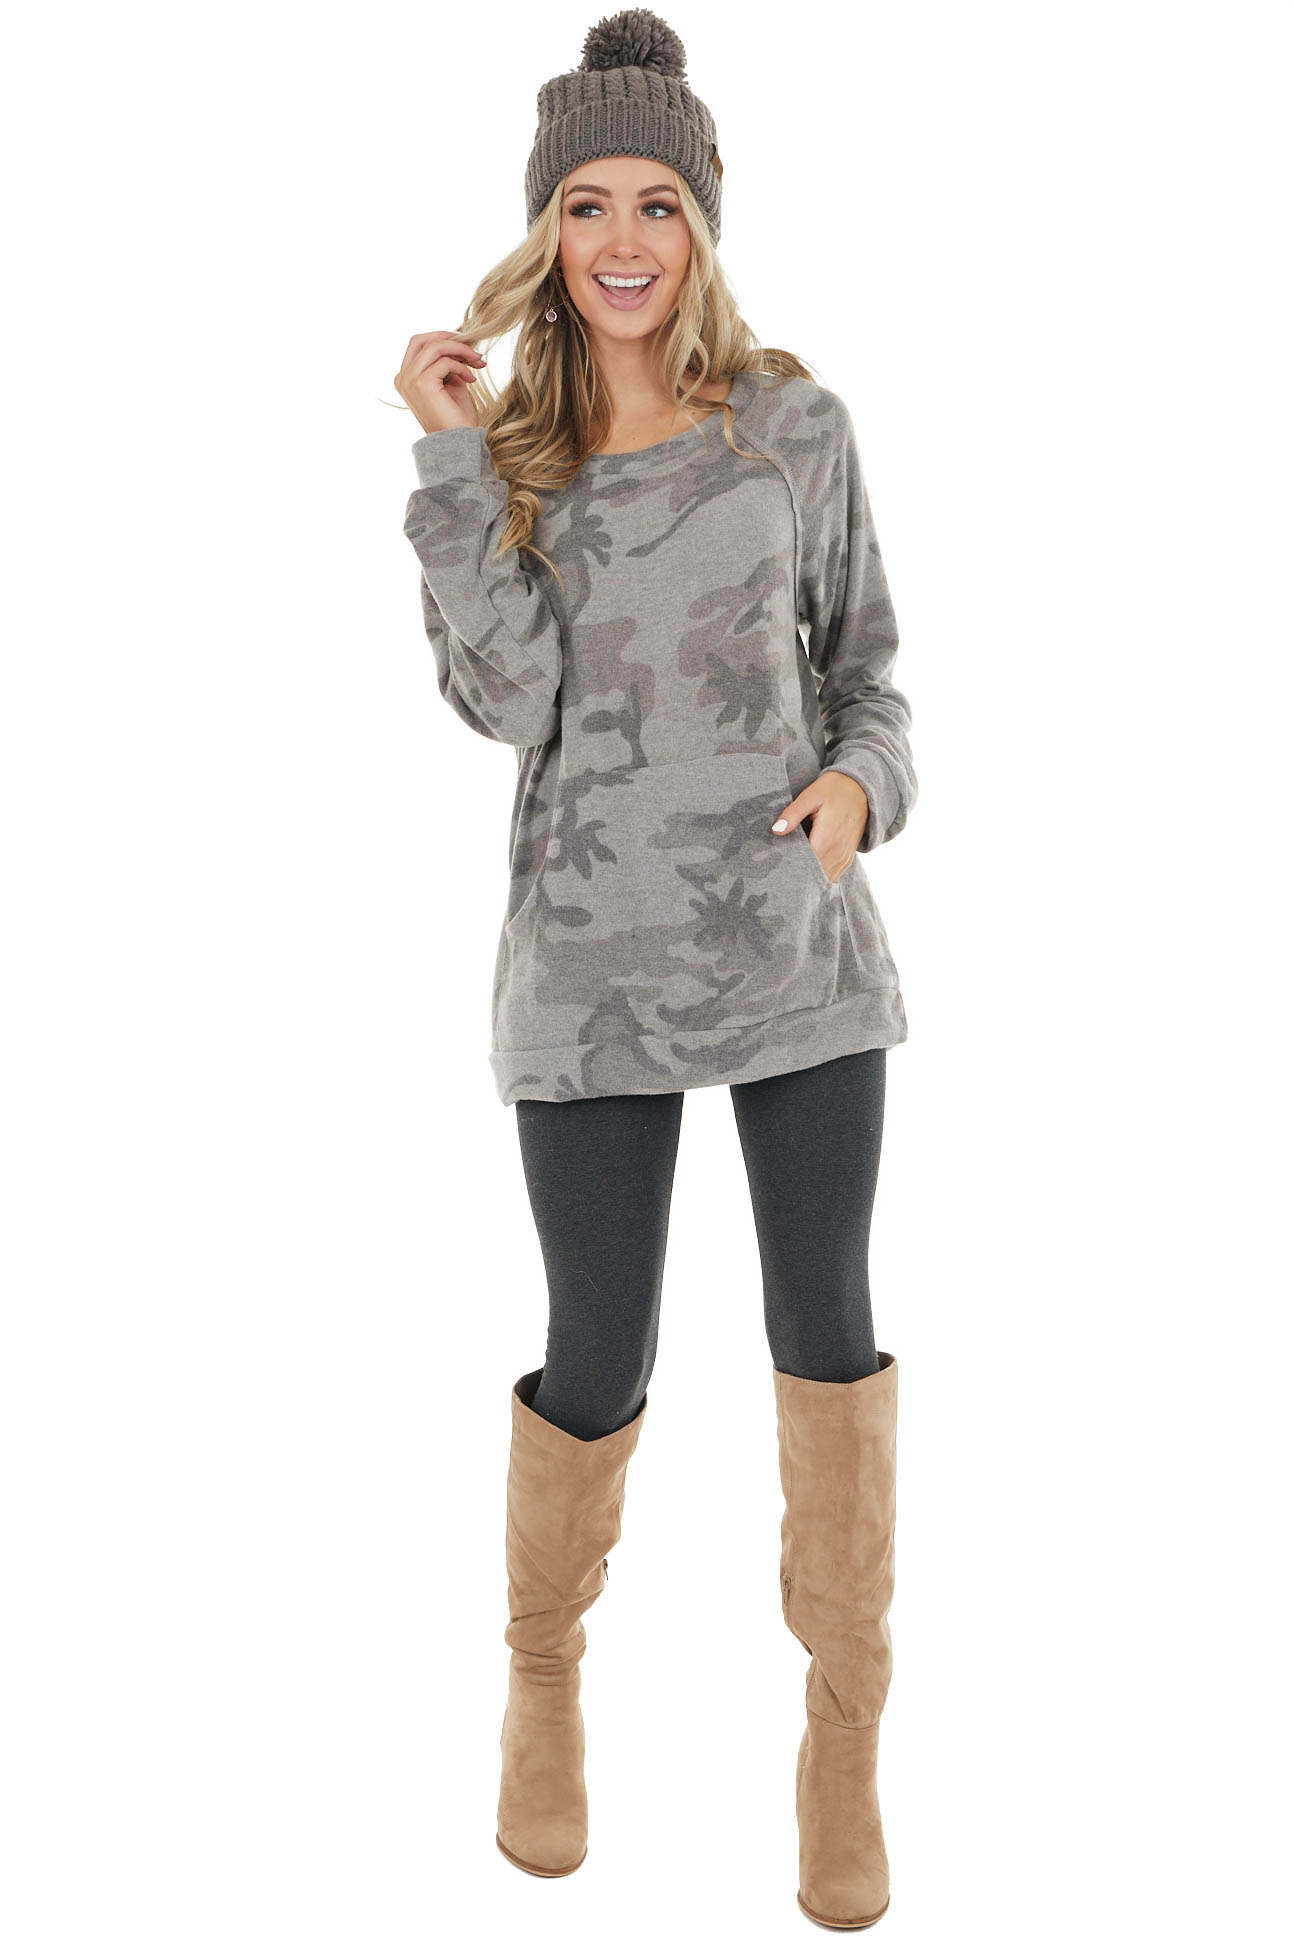 Stone Grey Camo Long Sleeve Knit Top with Kangaroo Pocket